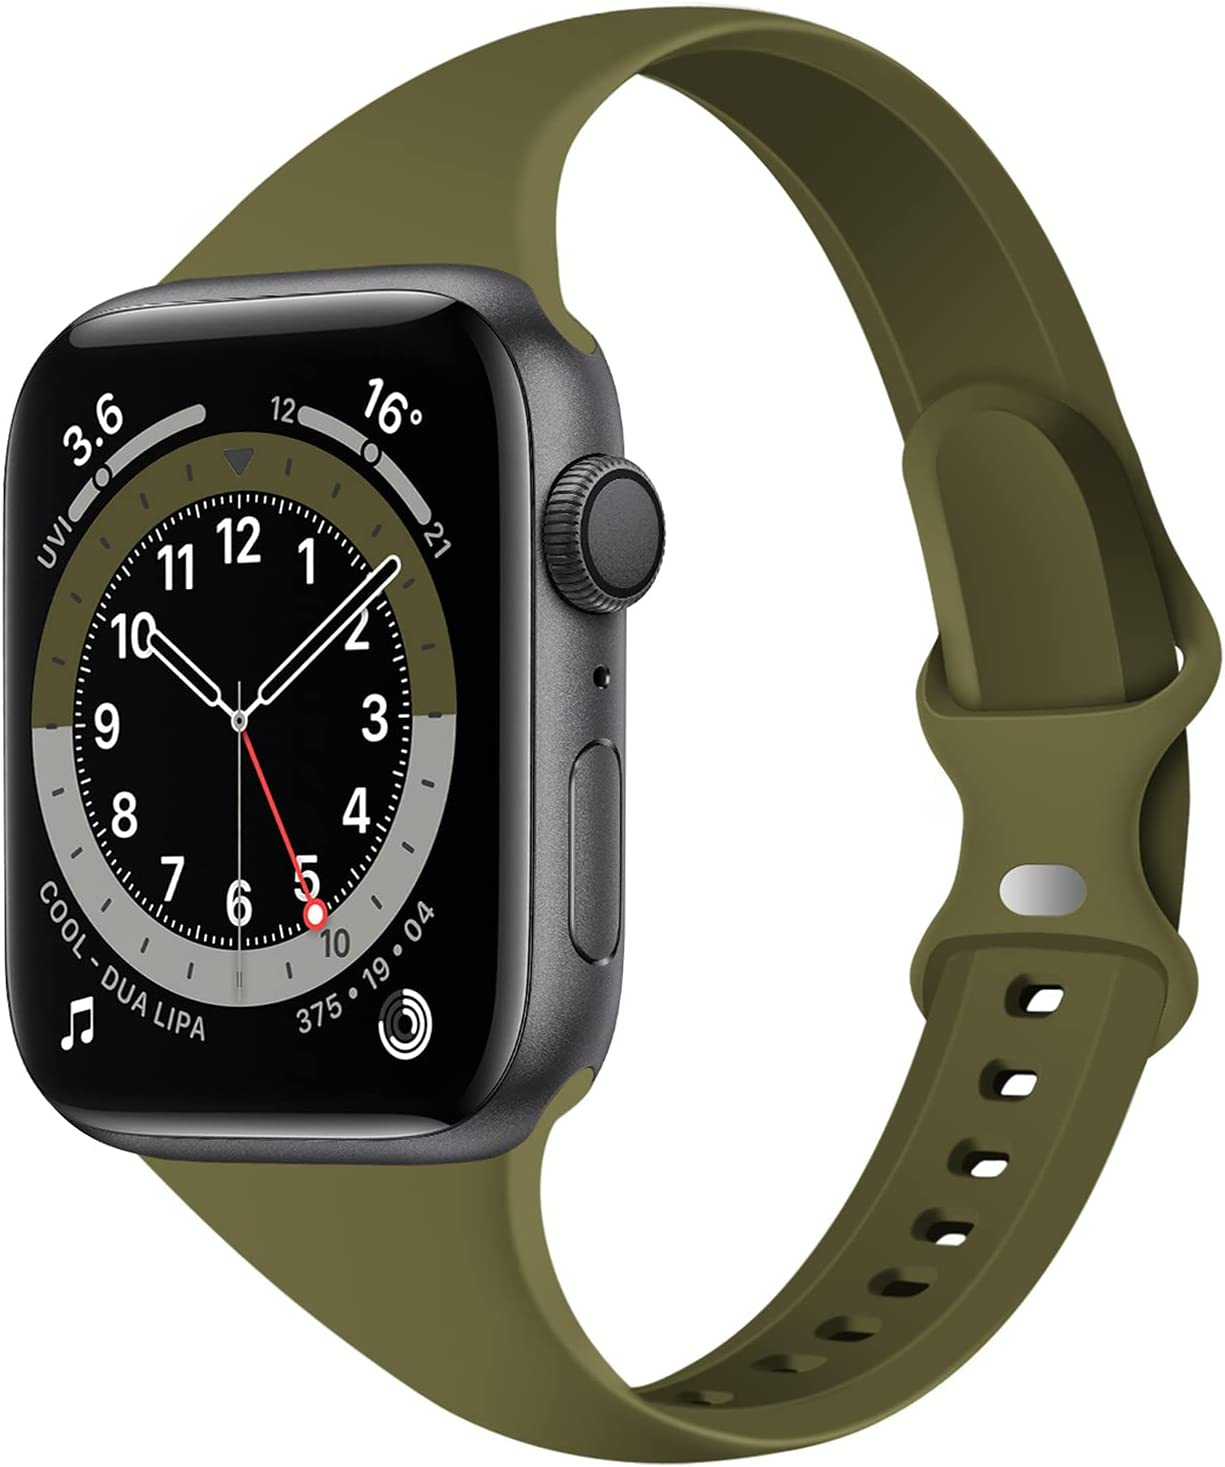 Acrbiutu Bands Compatible with Apple Watch 38mm 40mm, Slim Thin Narrow Replacement Silicone Sport Strap for iWatch SE Series 1/2/3/4/5/6, Olive Green 38mm/40mm